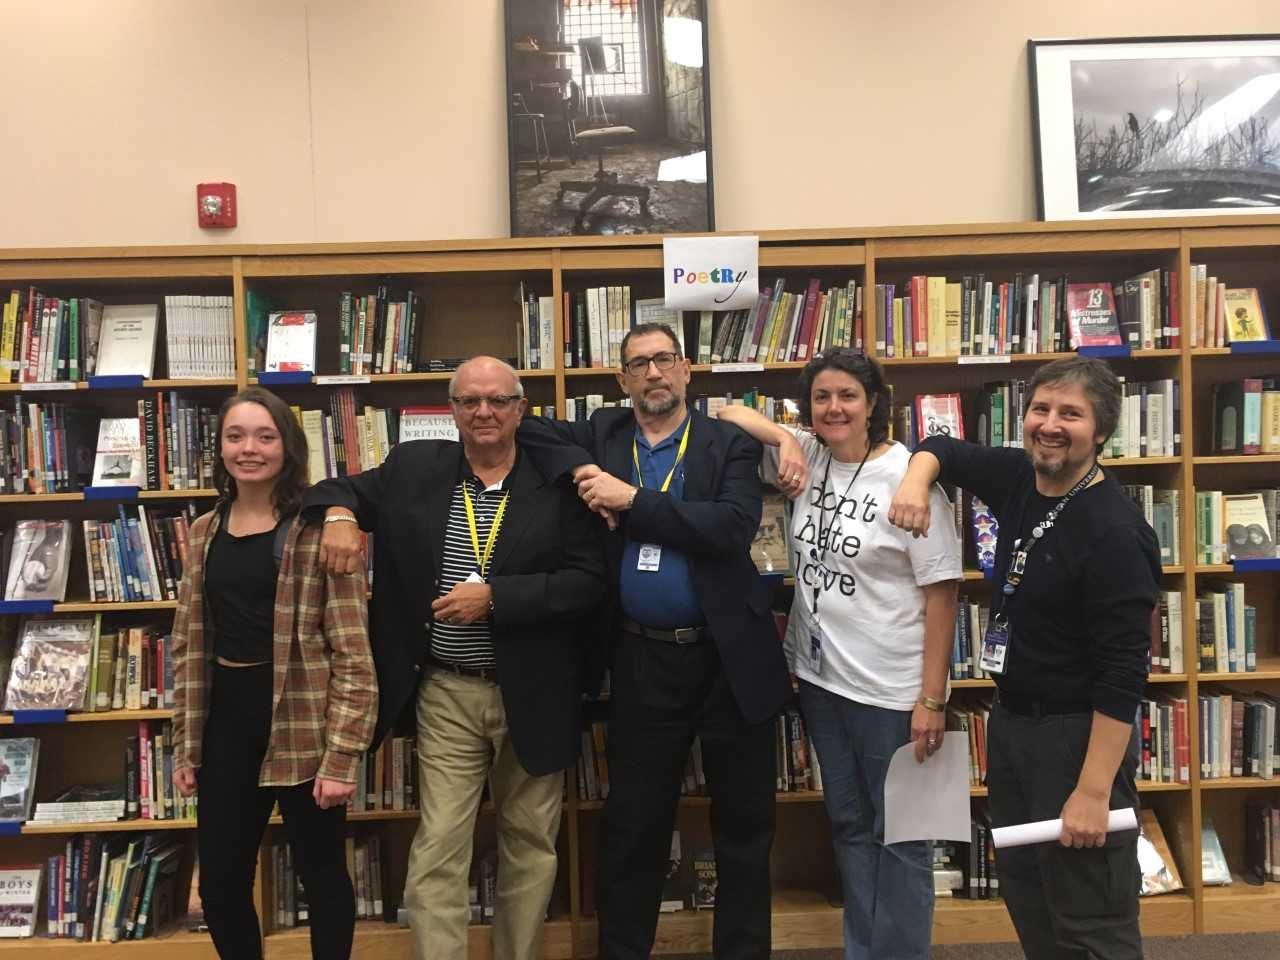 """""""Come to the slam - even if you decide not to read out loud, """" said Librarian Maggie Devine. """"I promise you will be energized by the poems and voices of others.  This may be enough to give you the courage to read and if not, you can certainly read the next time!"""" (Photo by Kirsten Dorman)"""